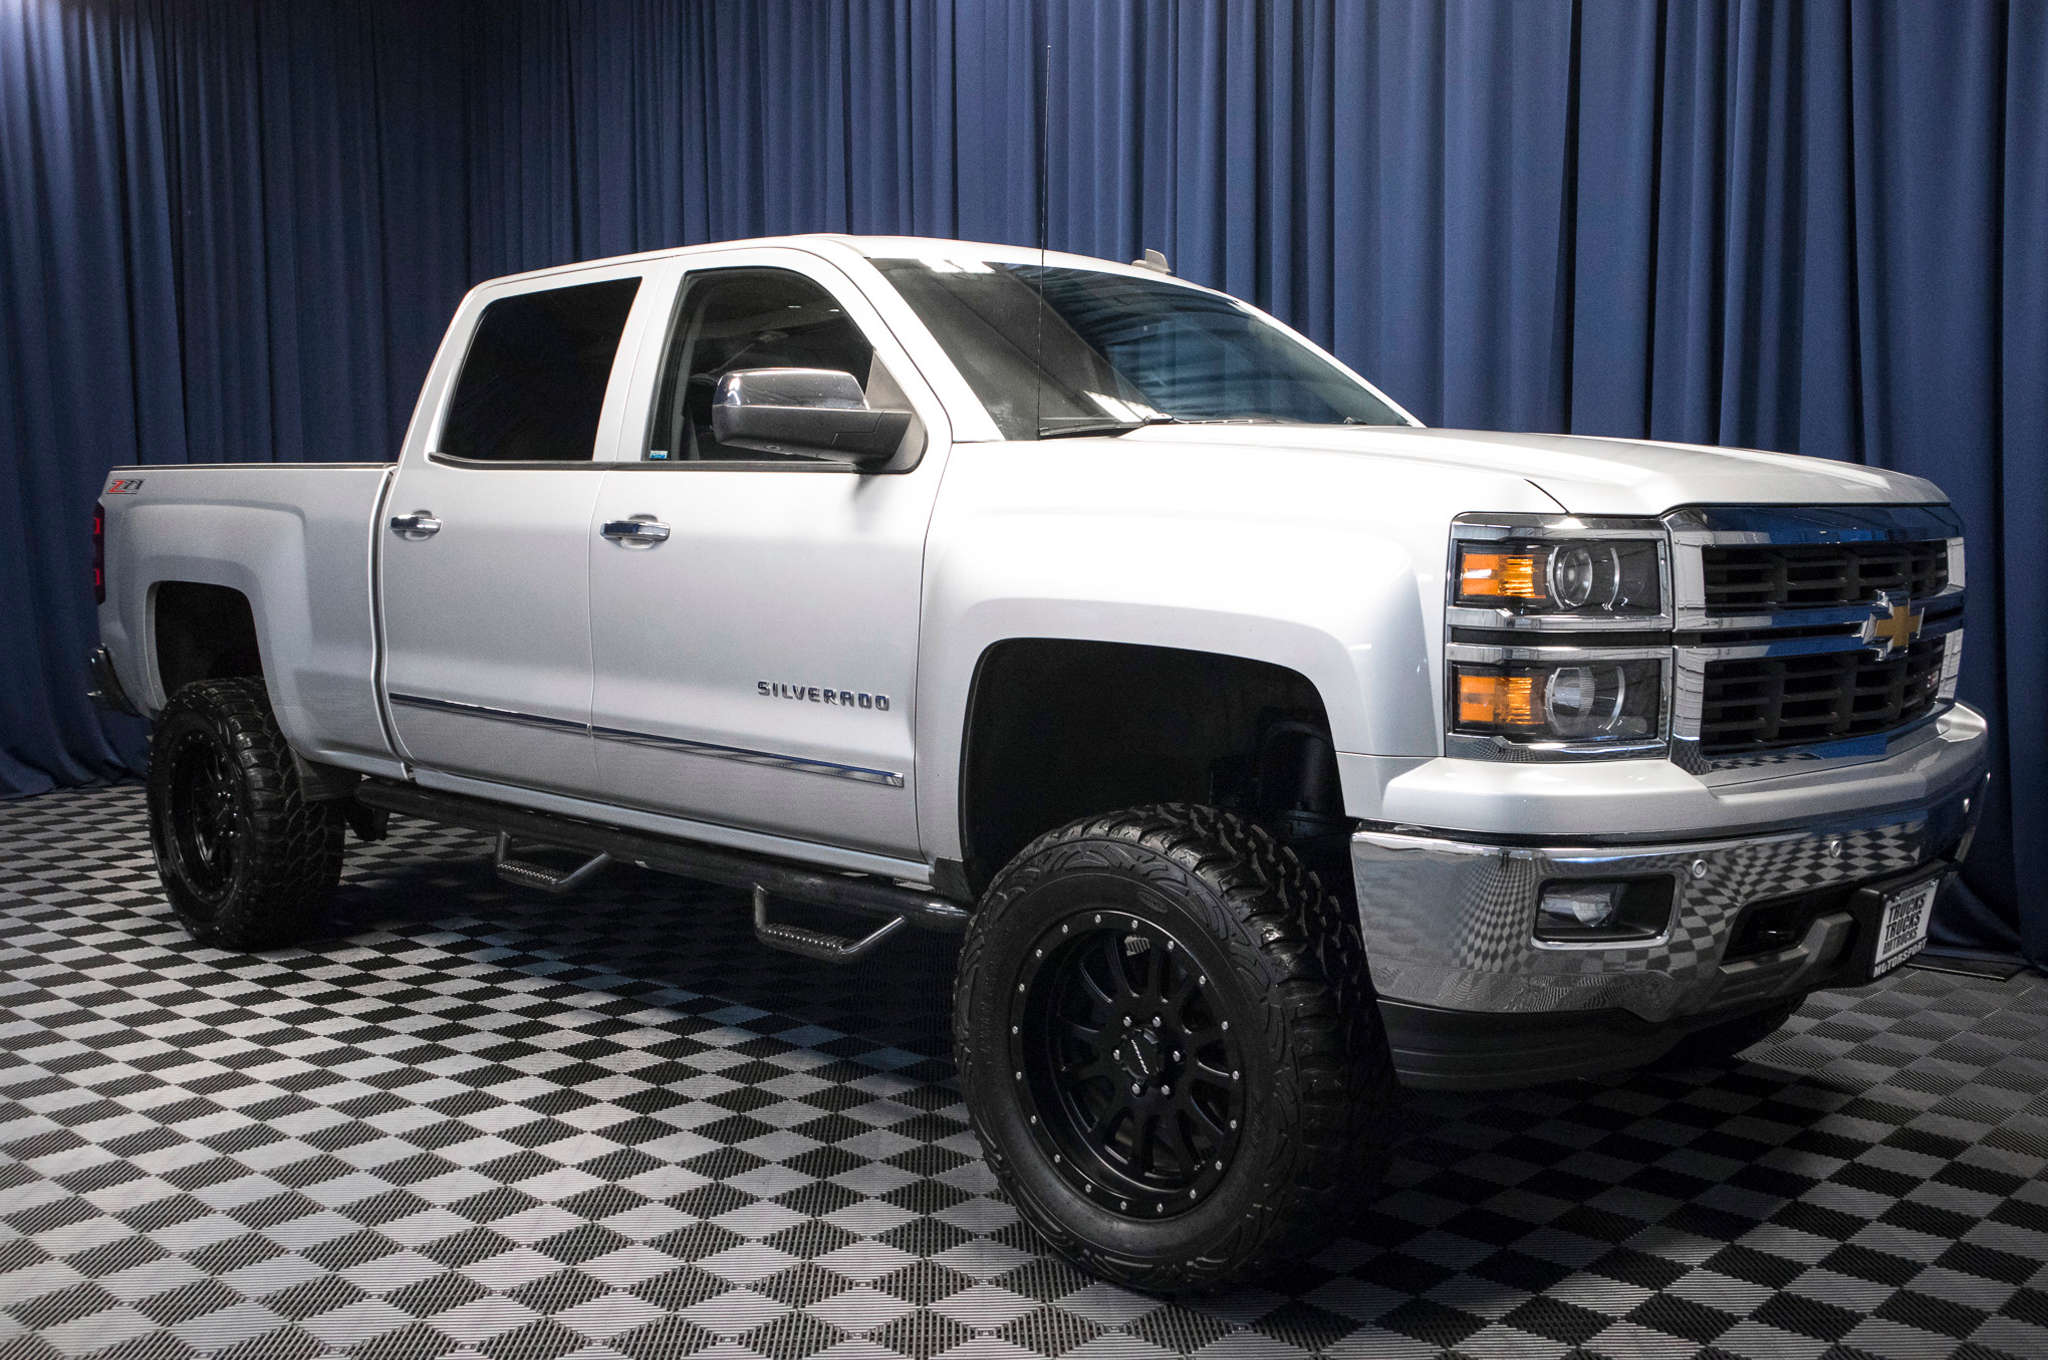 used lifted 2014 chevrolet silverado 1500 ltz z71 4x4 truck for sale 47399. Black Bedroom Furniture Sets. Home Design Ideas